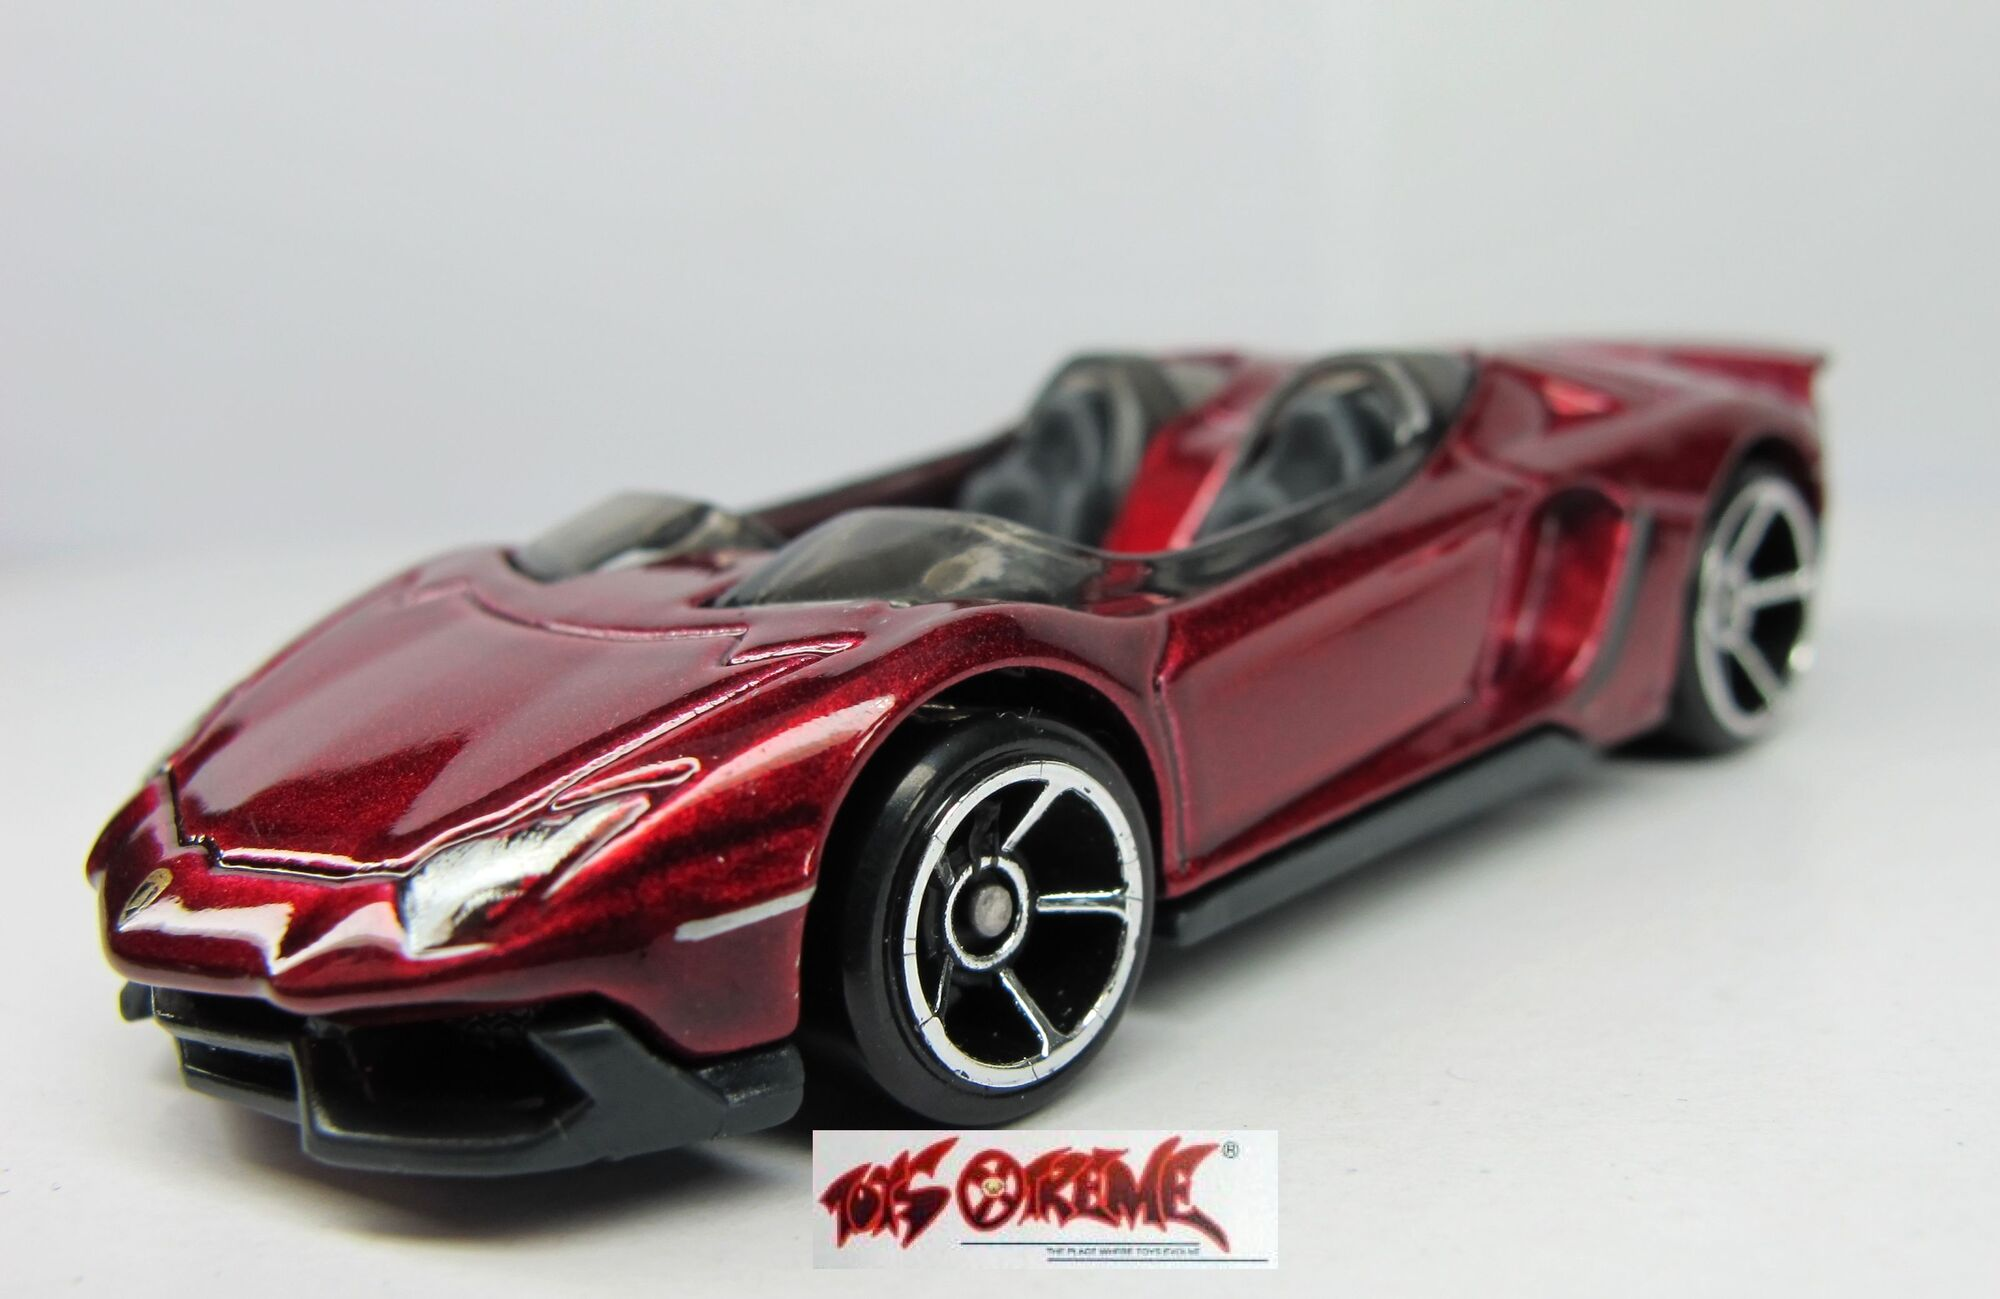 lamborghini aventador j hot wheels wiki fandom powered by wikia. Black Bedroom Furniture Sets. Home Design Ideas